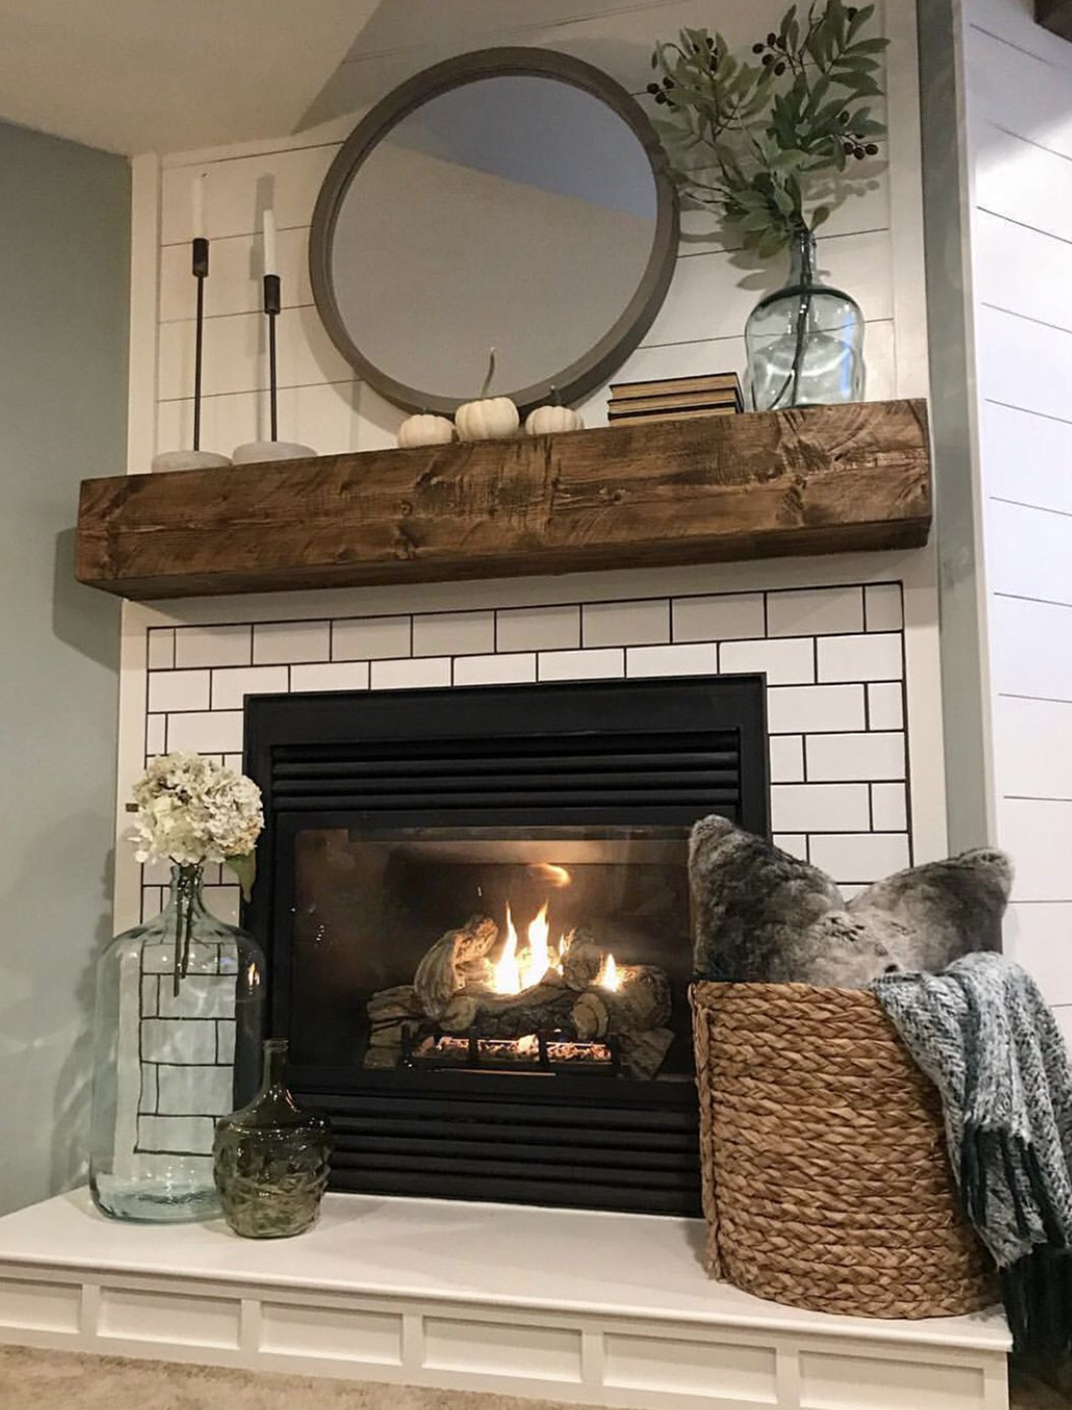 Fireplace Decoration- an Important Element of Home Decor.